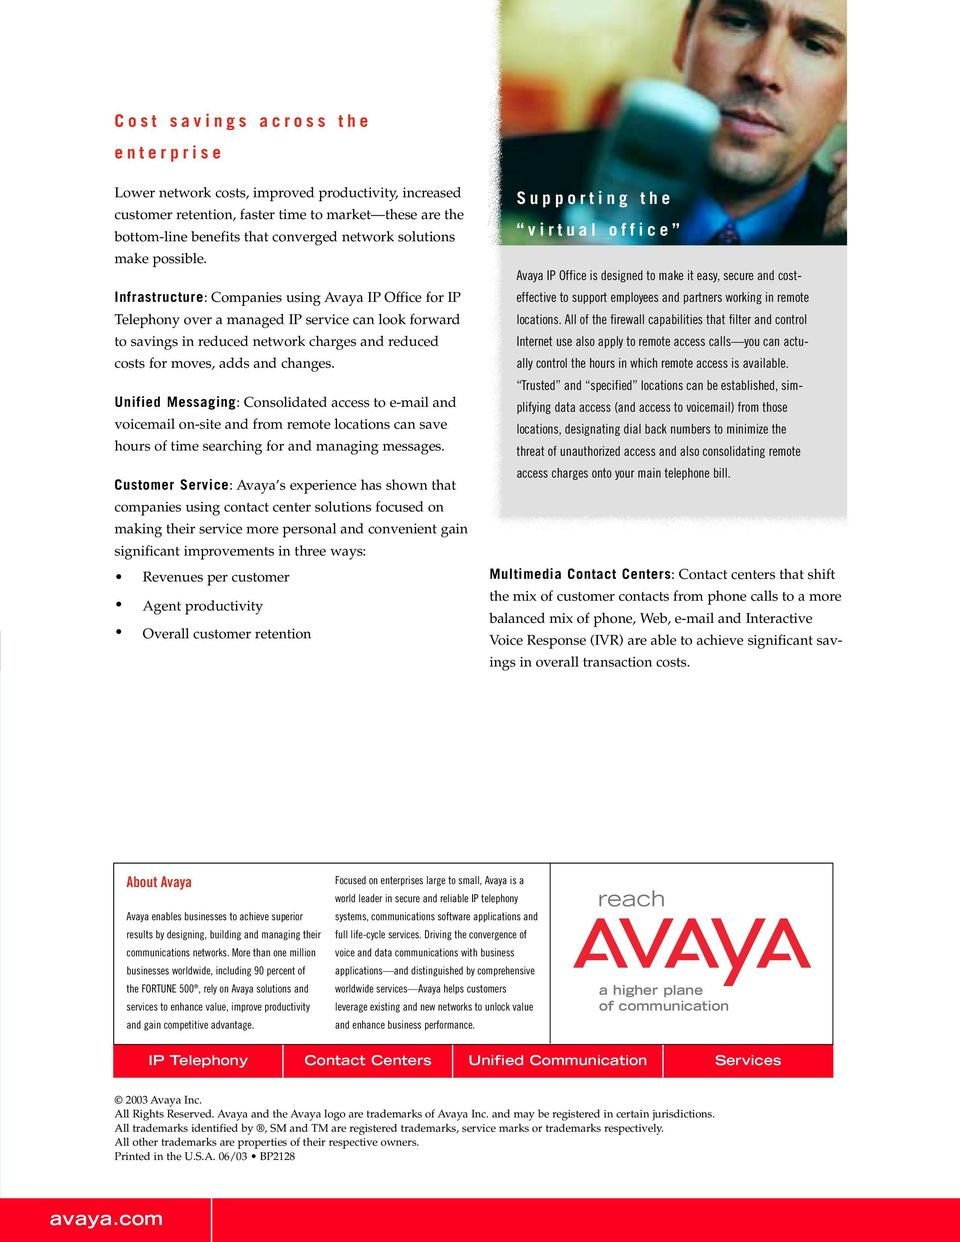 Infrastructure: Companies using Avaya IP Office for IP Telephony over a managed IP service can look forward to savings in reduced network charges and reduced costs for moves, adds and changes.